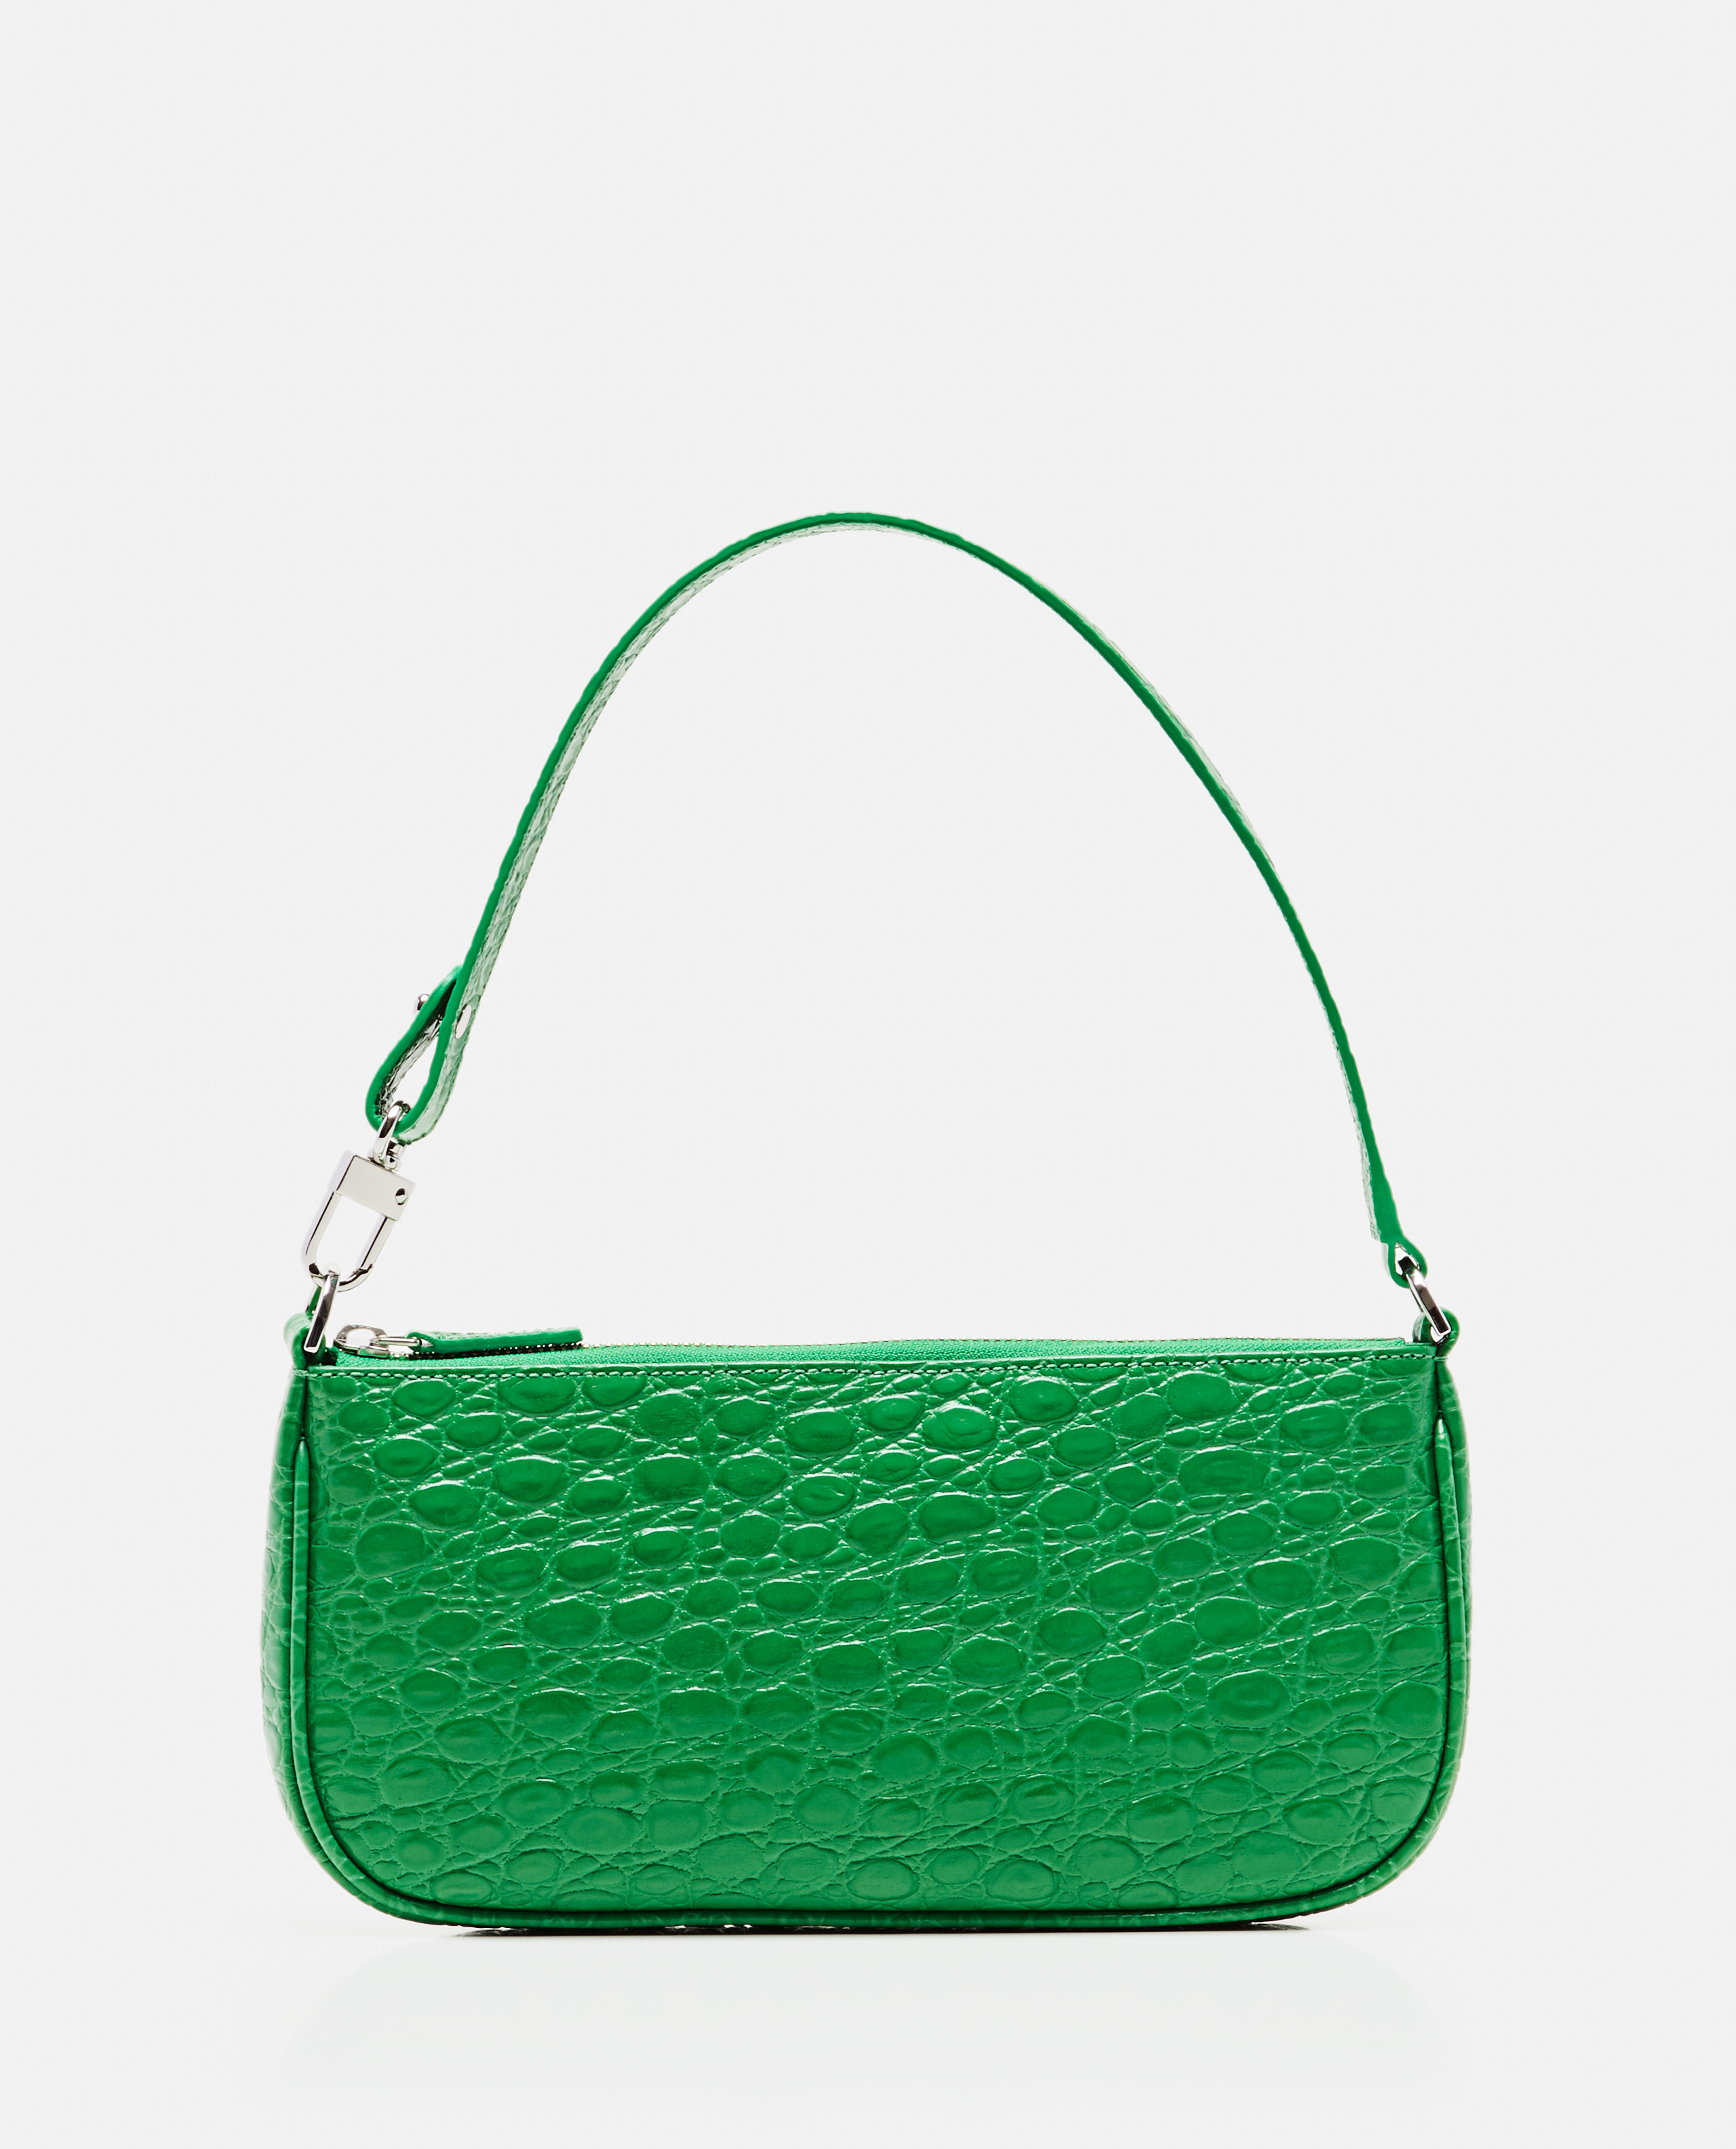 By Far Leathers BY FAR TOTE BAG WITH CROCODILE PRINT